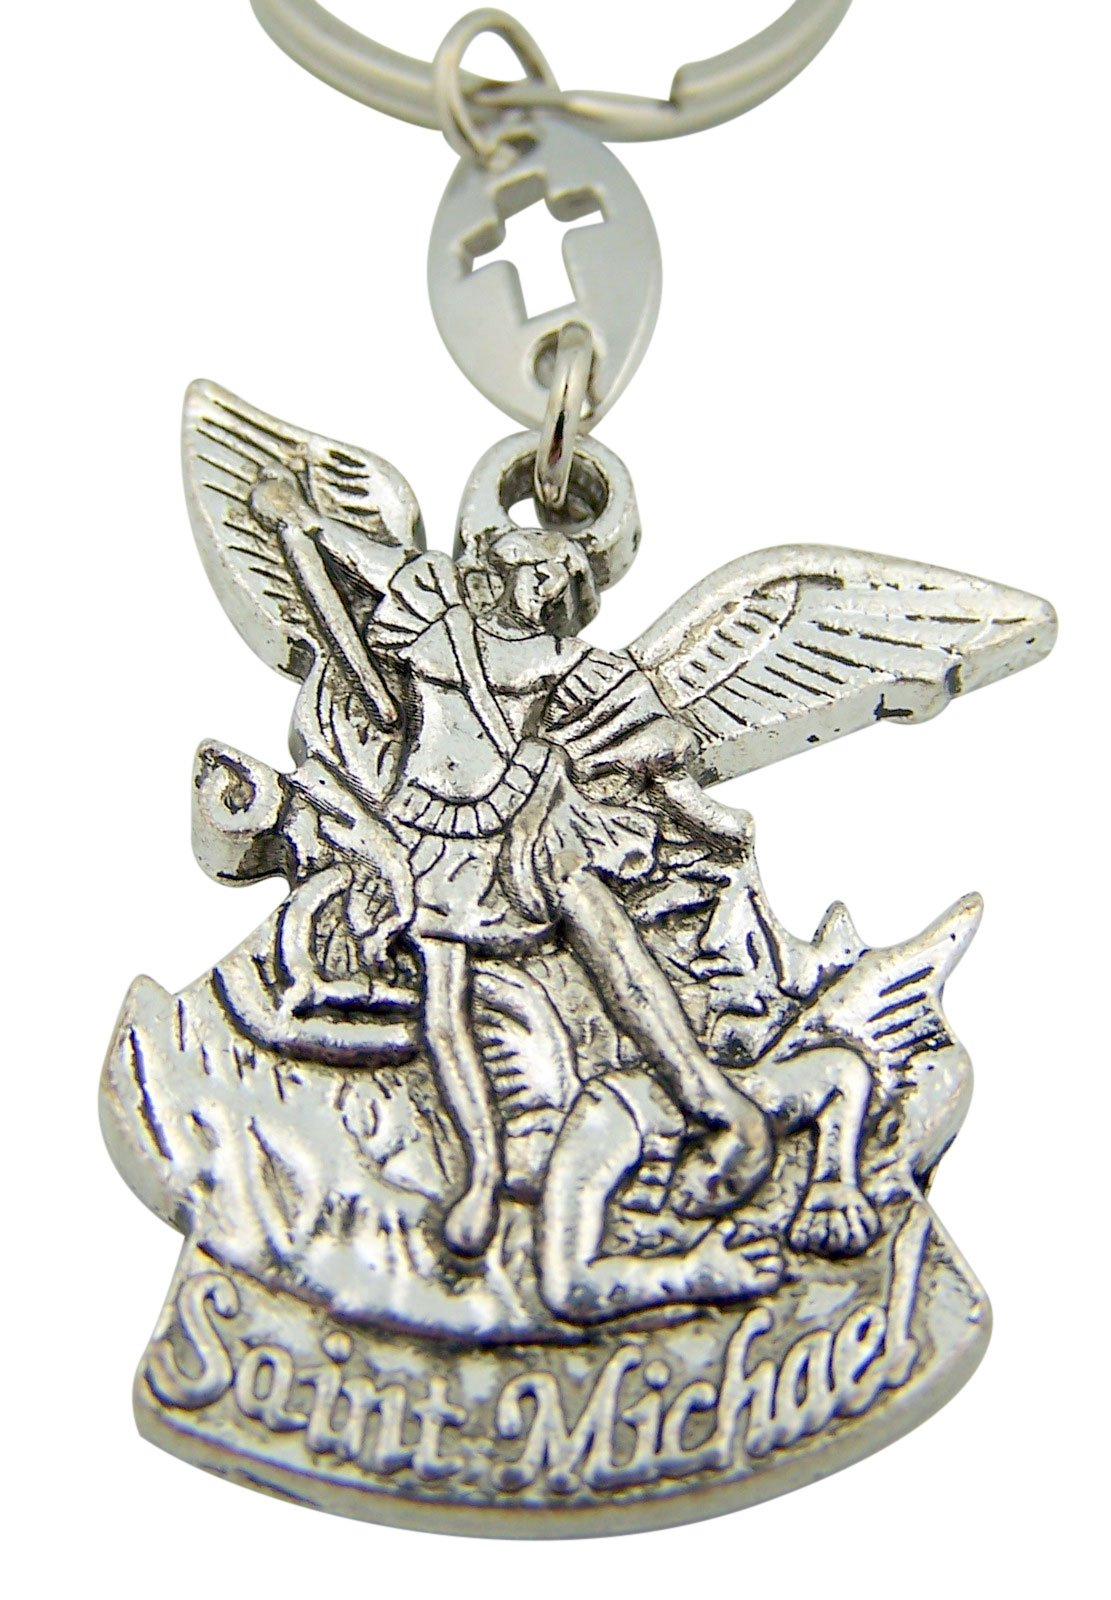 Religious Gifts Saint St Michael the Archangel Pray for Us Medal Travel Protection Key Chain